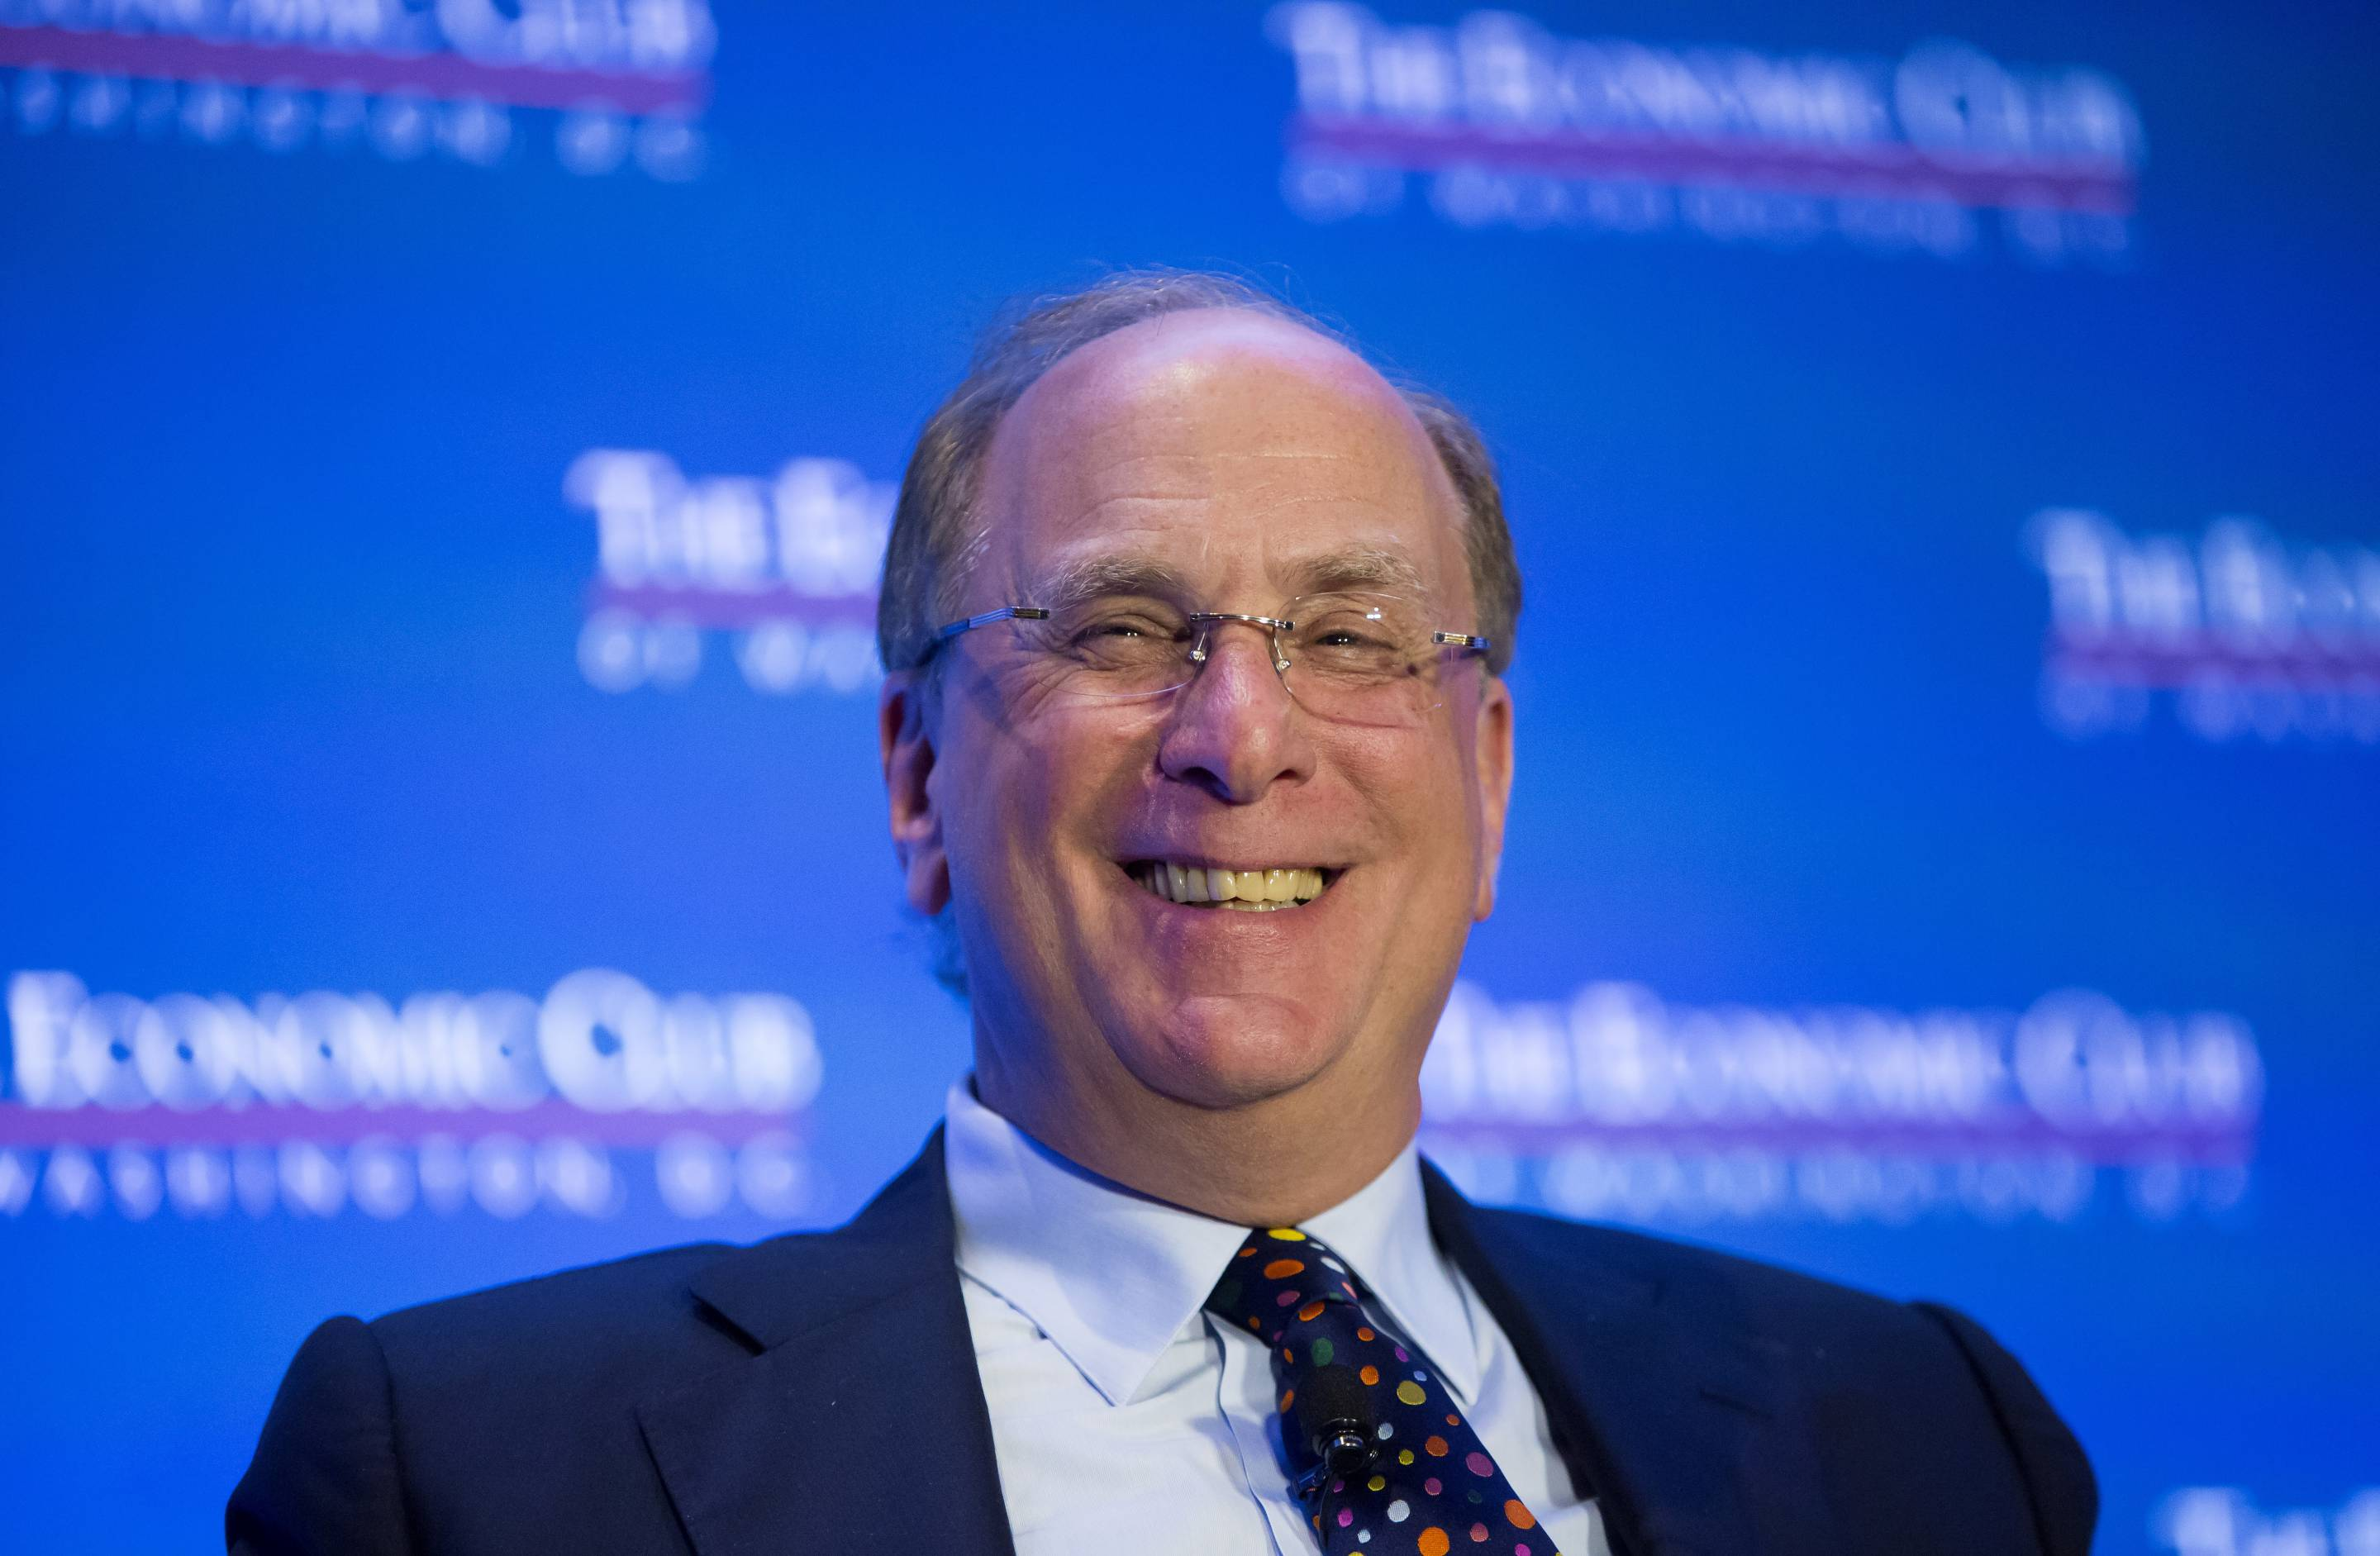 BlackRock Inc. Chairman And Chief Executive Officer Laurence Fink Speaks To Economic Club Of Washington D.C.